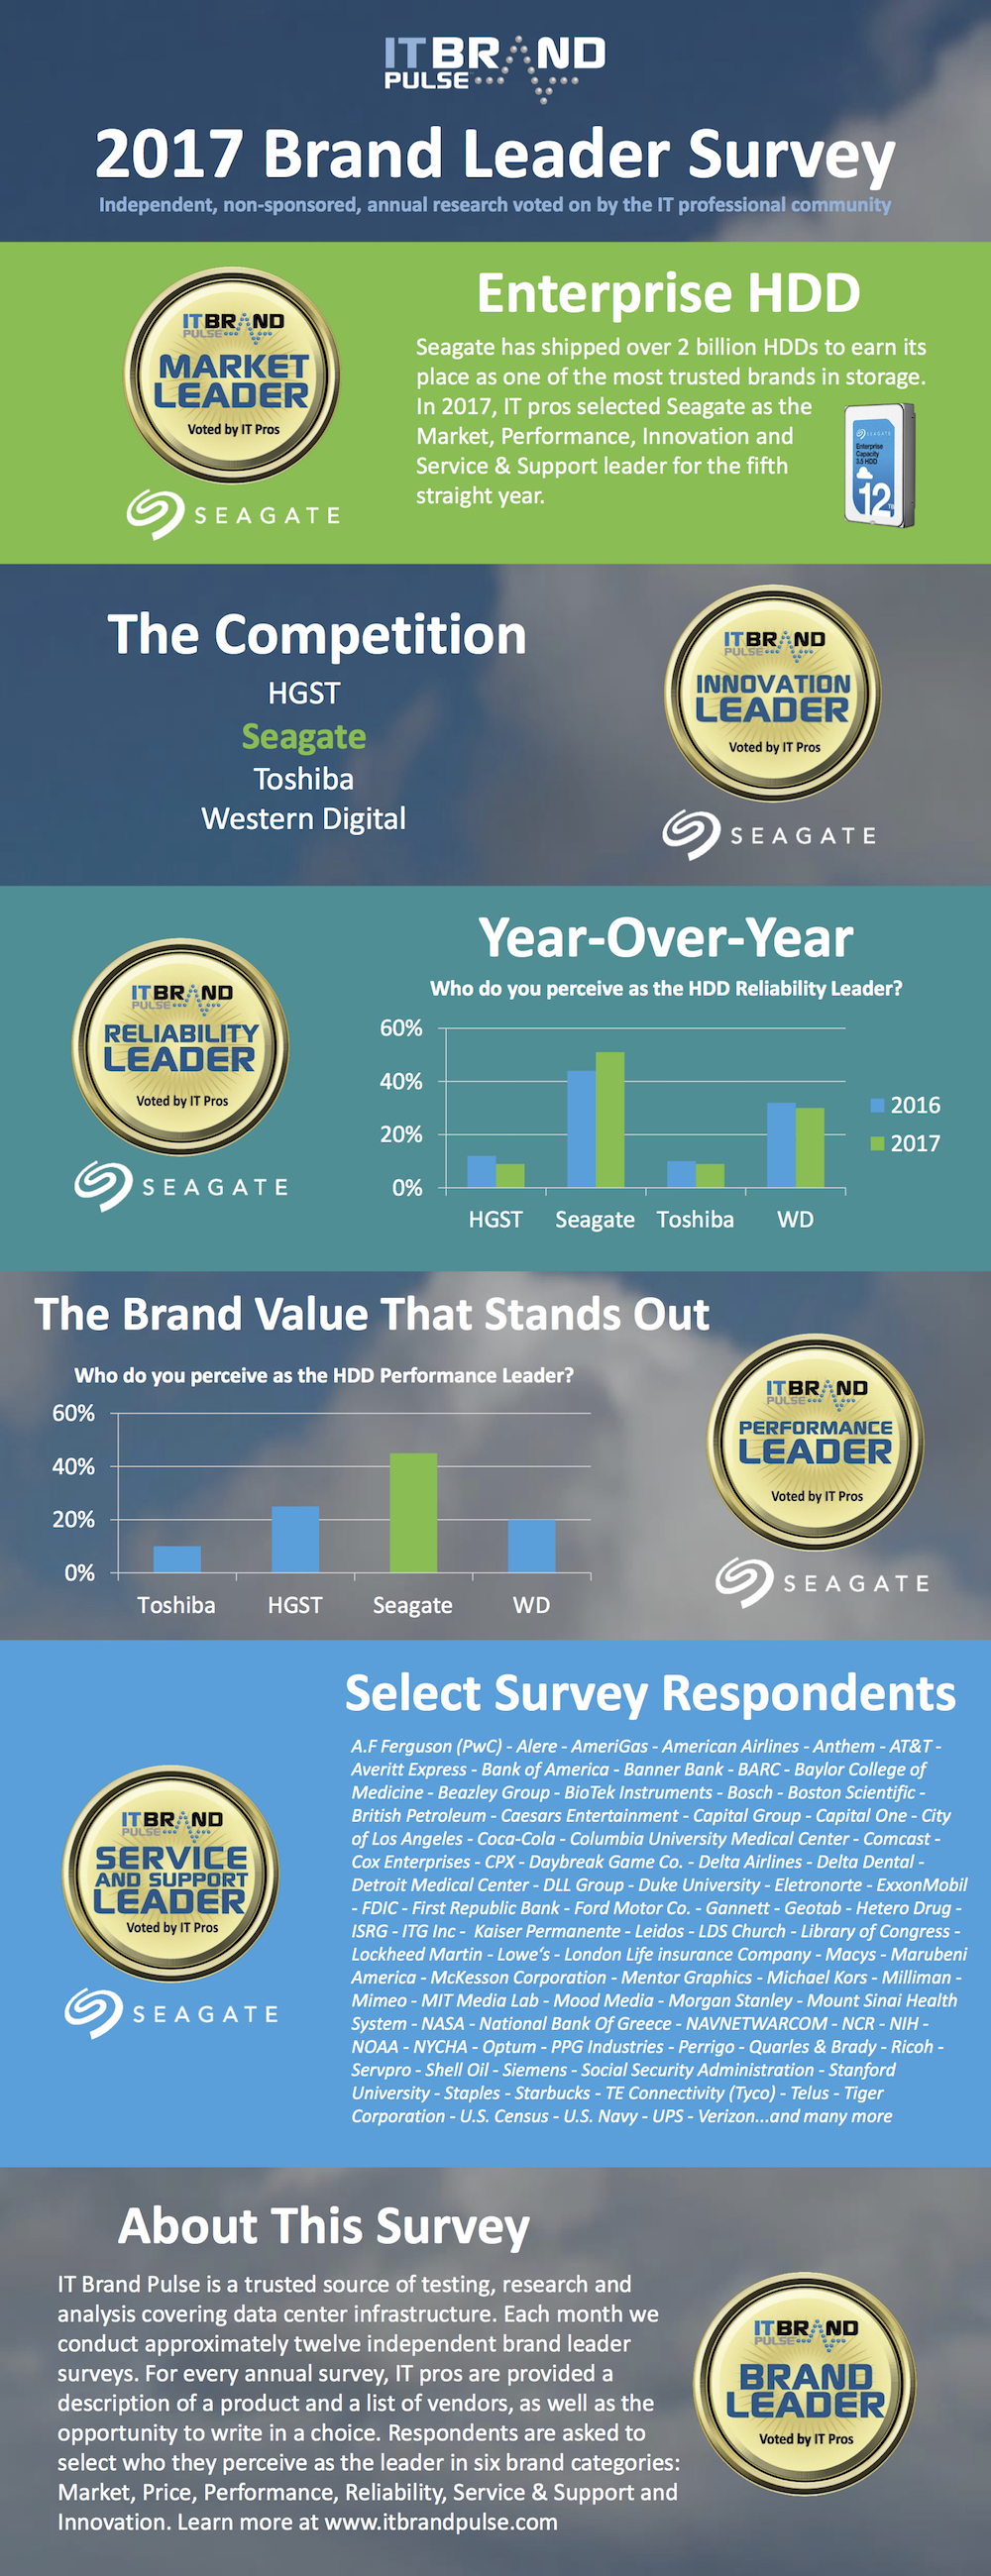 IT Brand Pulse 2017 Survey — Seagate named the market leader in Innovation, Performance, Reliability, Service and Support